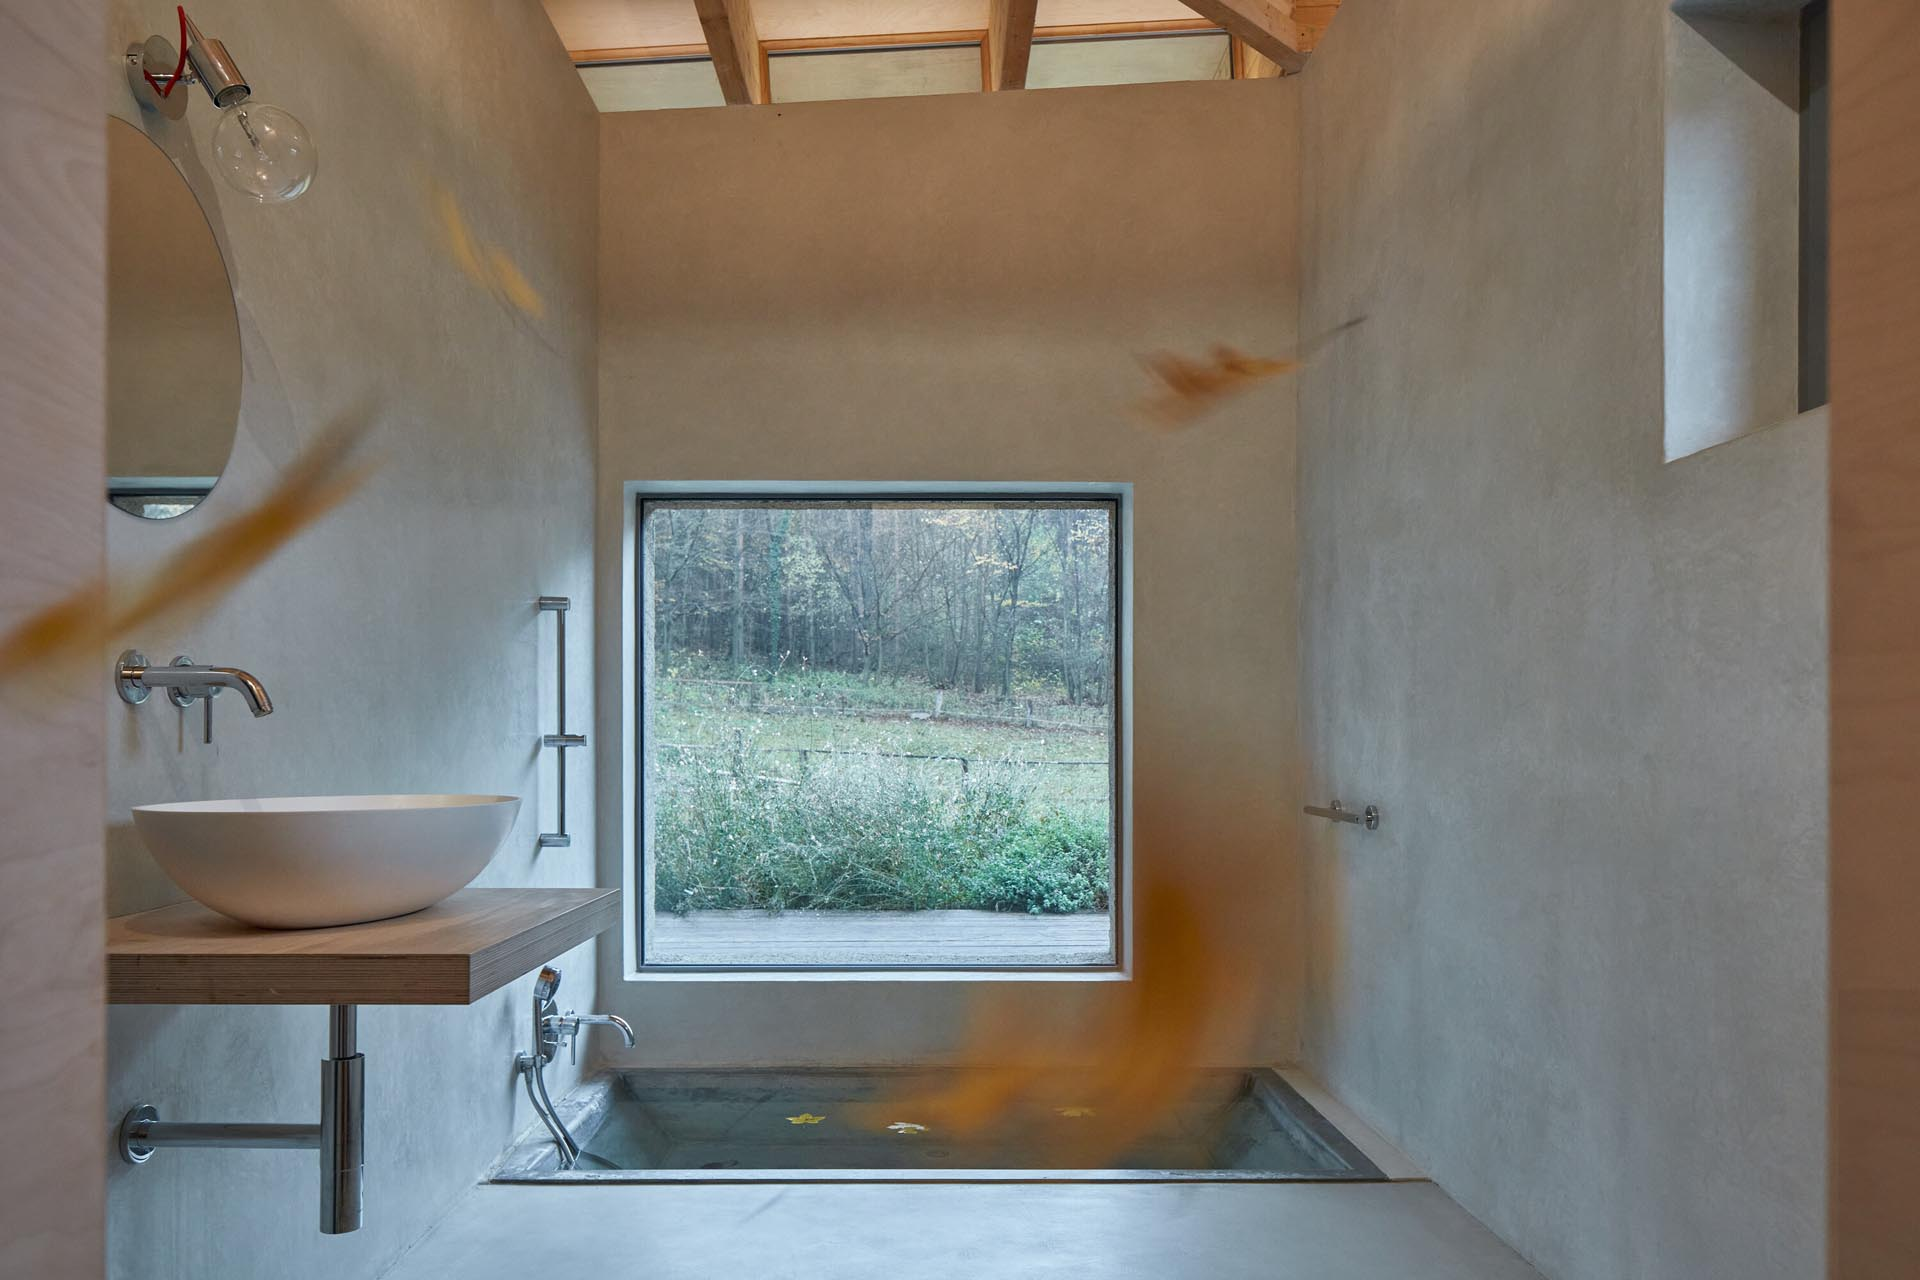 This modern cabin bathroom has been designed with a built-in sunken bathtub, a minimal wood vanity, and a large picture window.